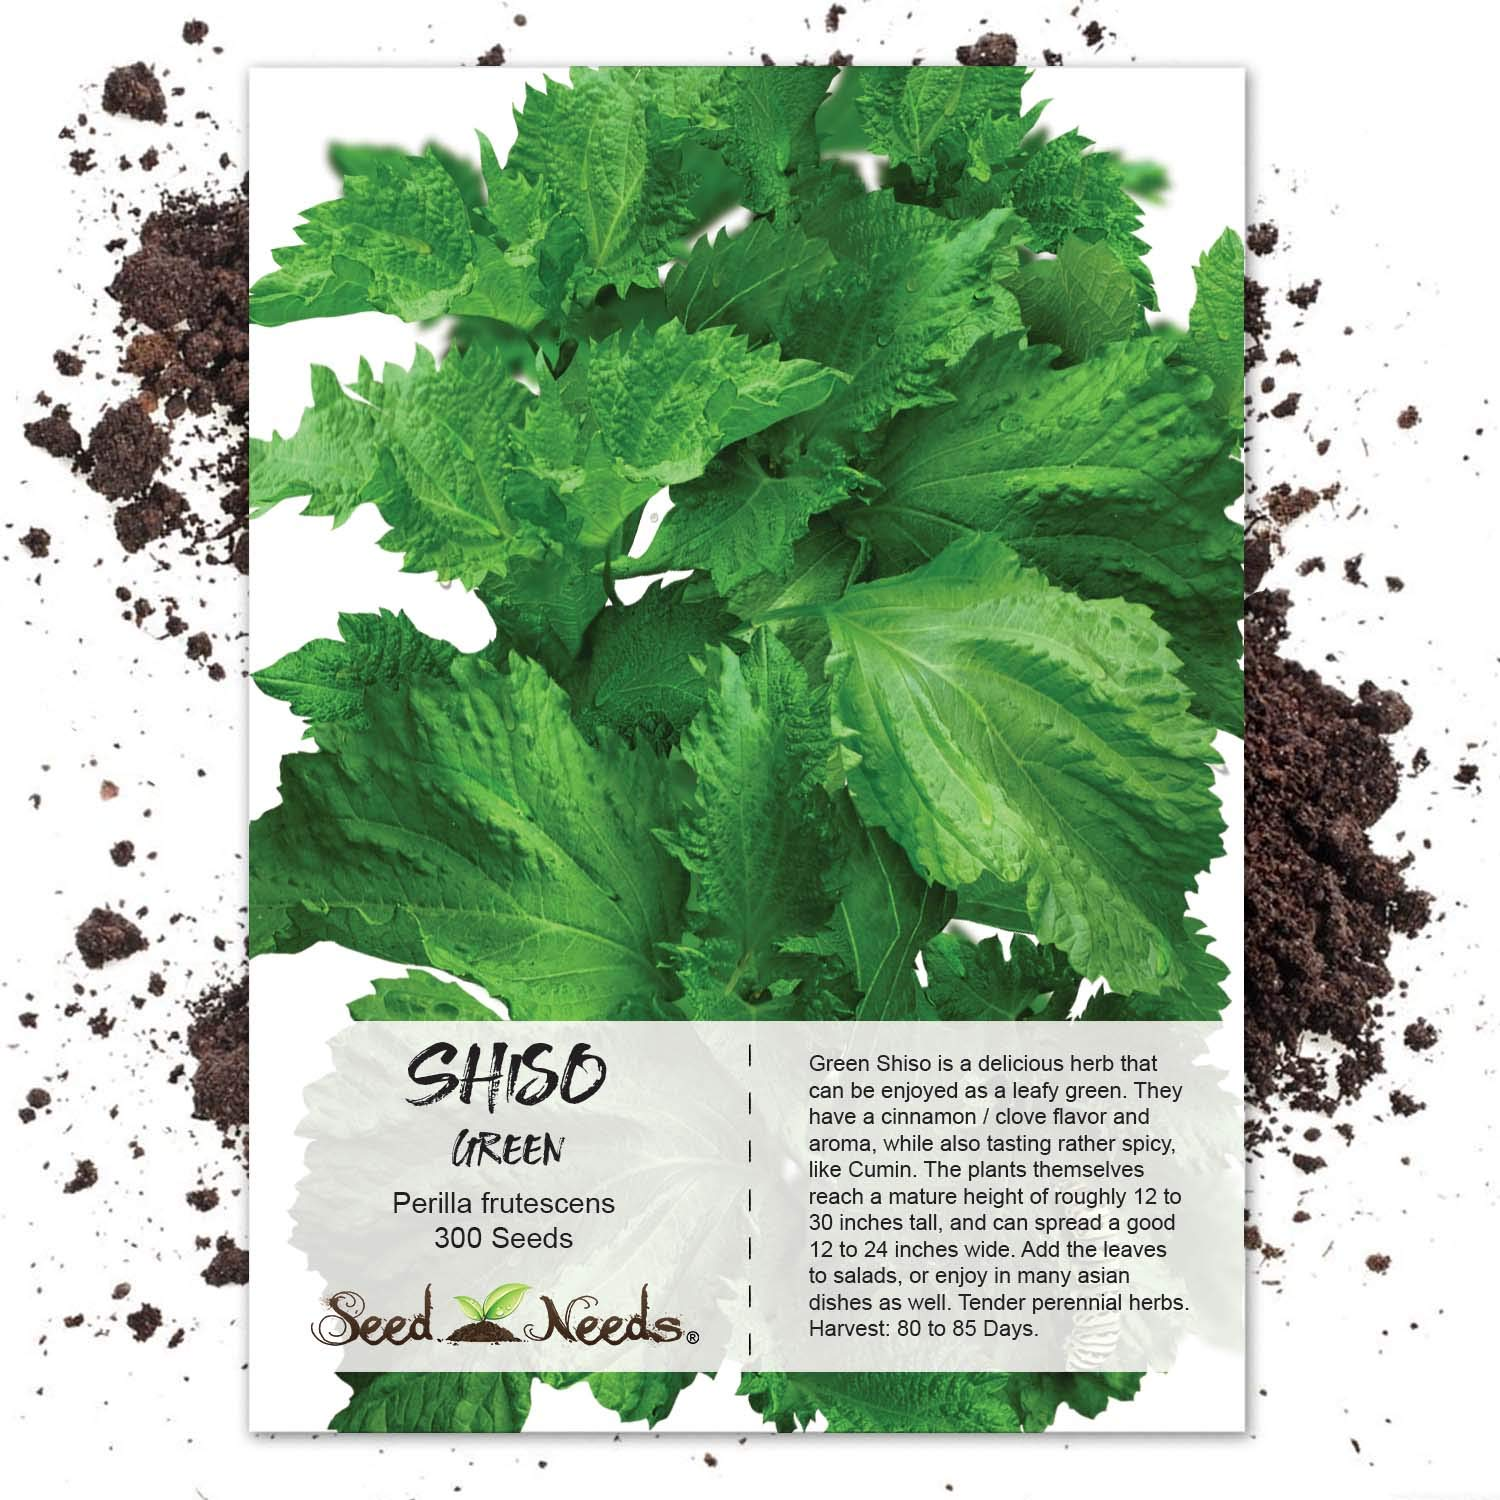 100 Seeds, Green Shiso (Perilla frutescens) Seeds By Seed Needs